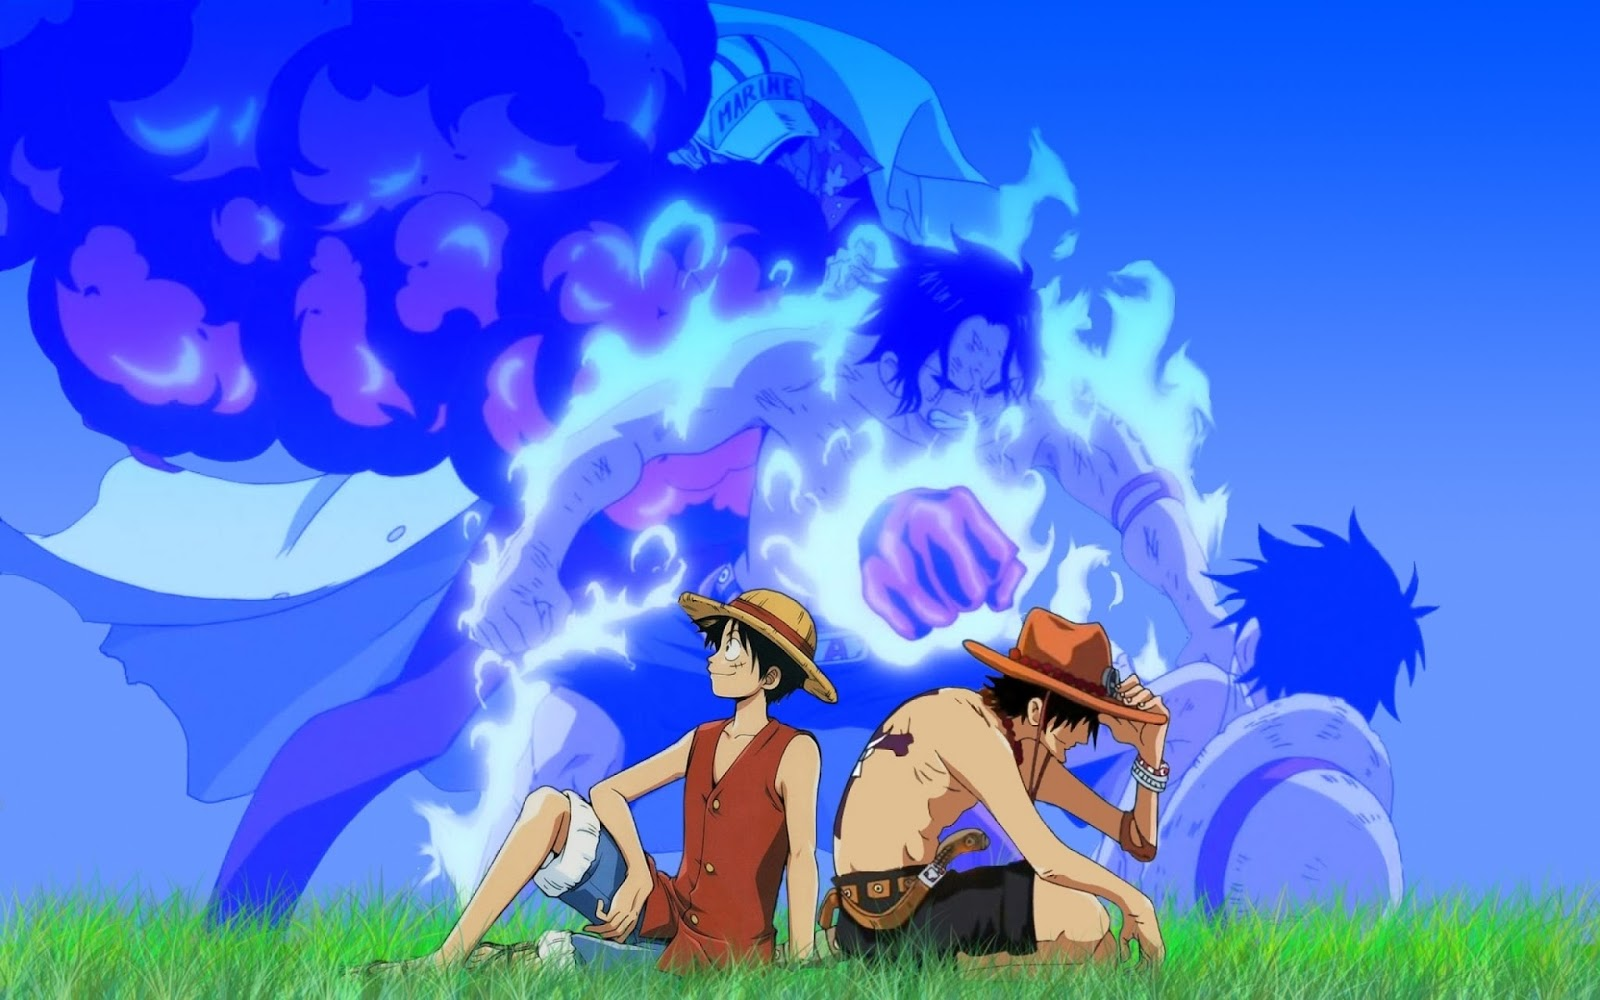 Gambar Kartun One Piece HD Wallpaper Kesinilahcom